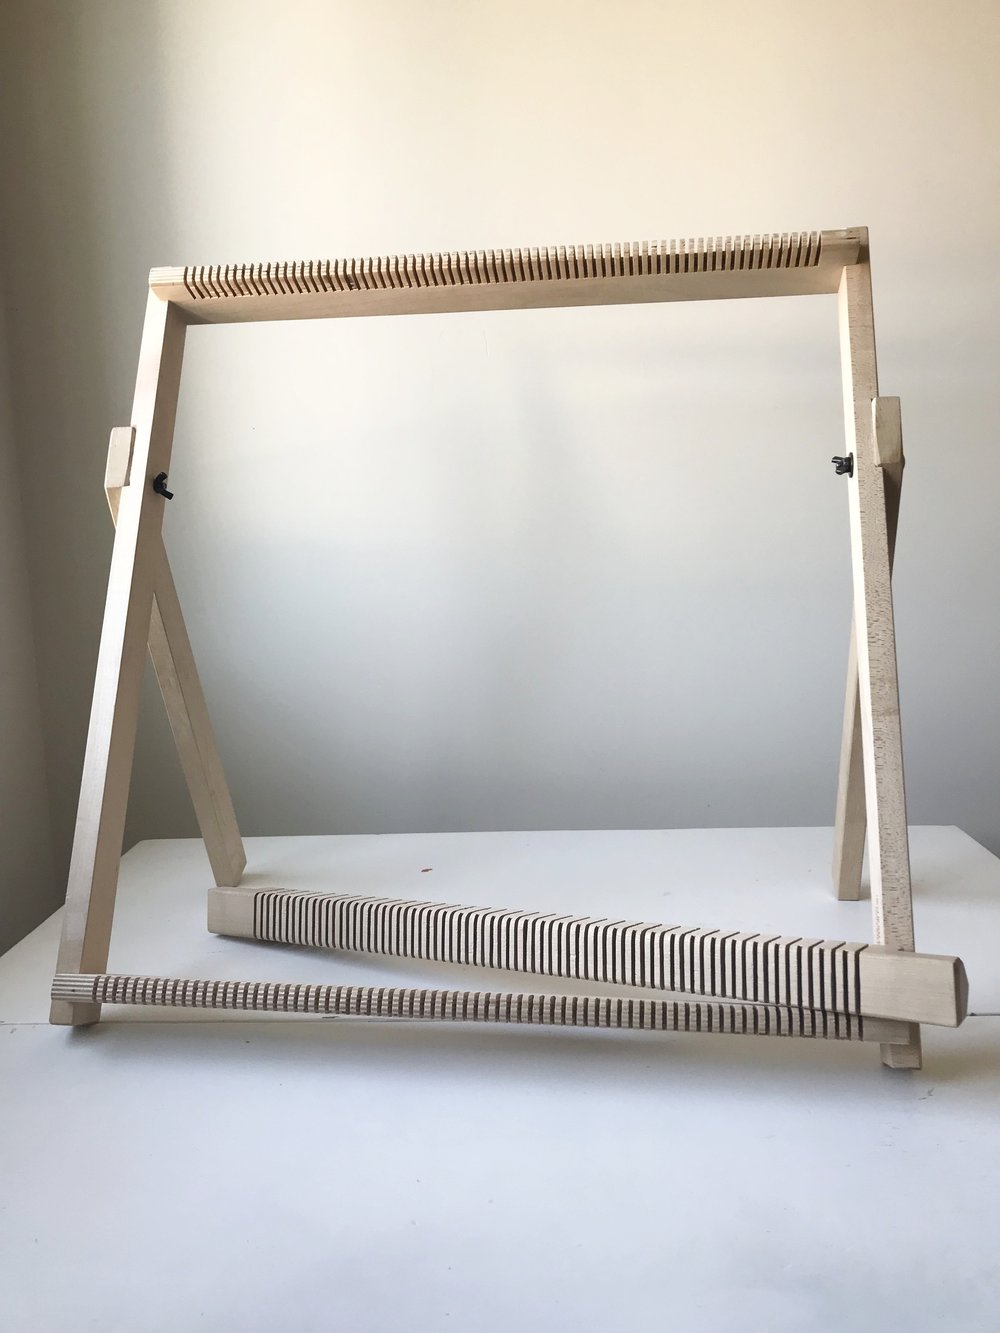 Frame loom with rotating heddle